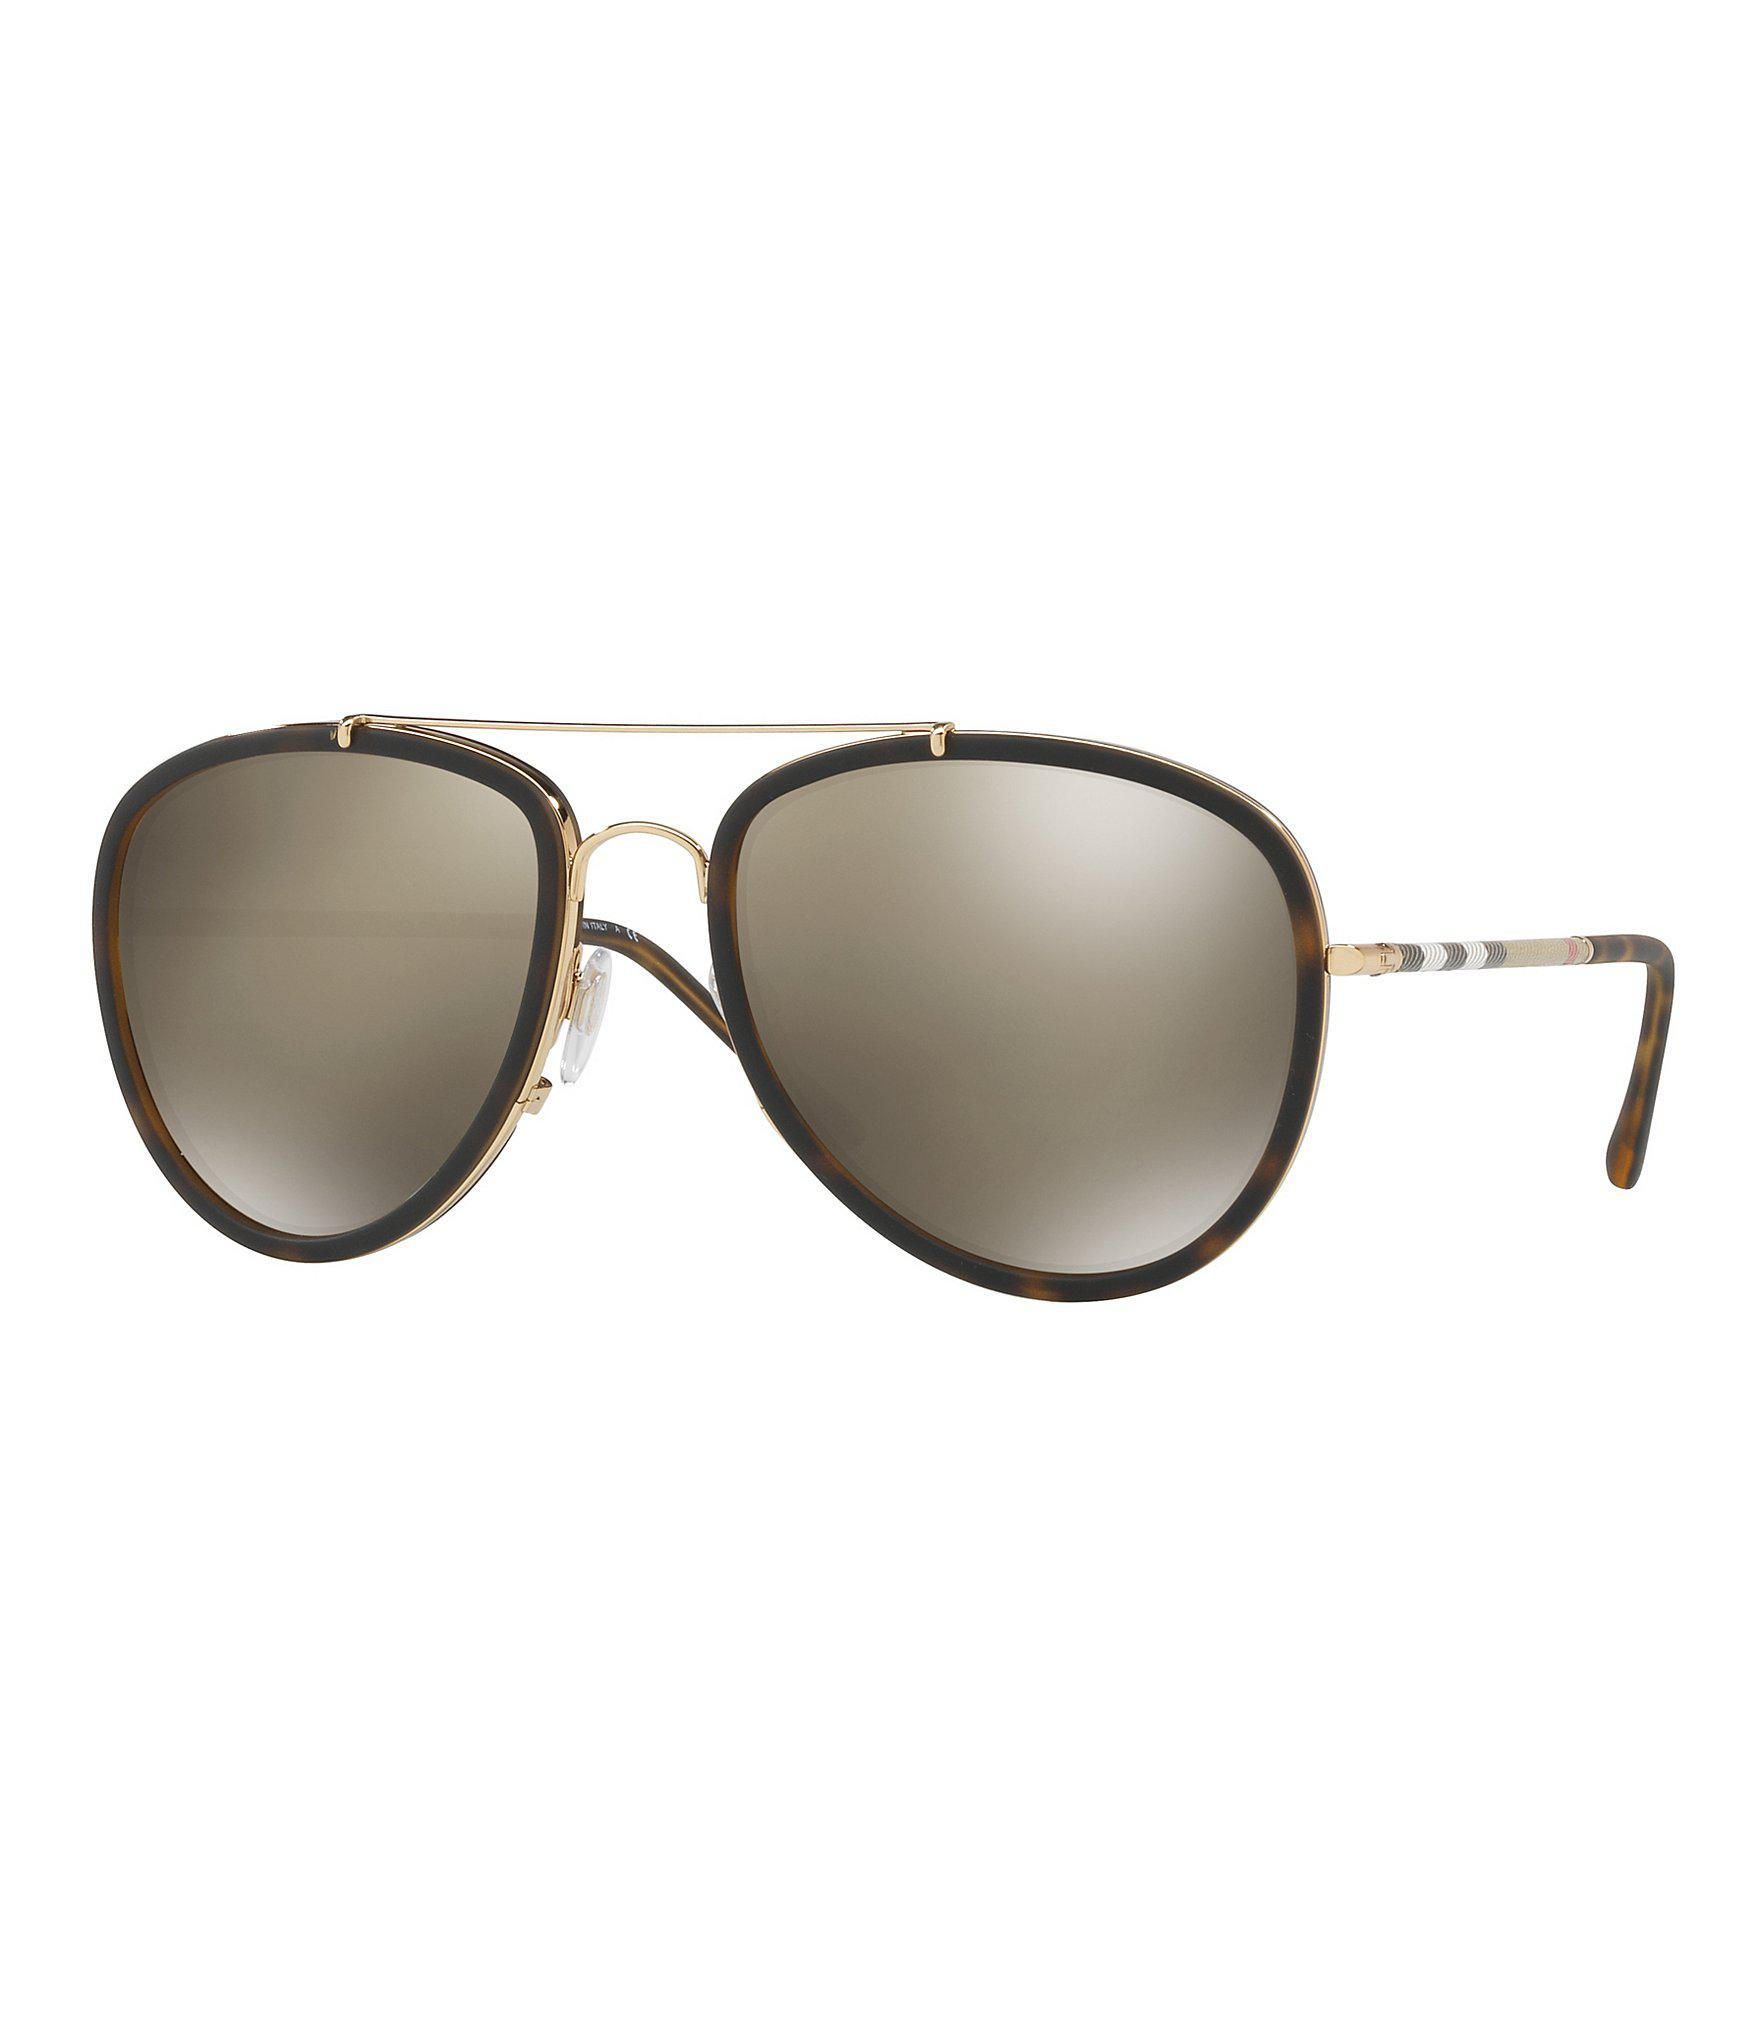 a8a505bc4bda Gallery. Previously sold at  Dillard s · Men s Mirrored Sunglasses ...